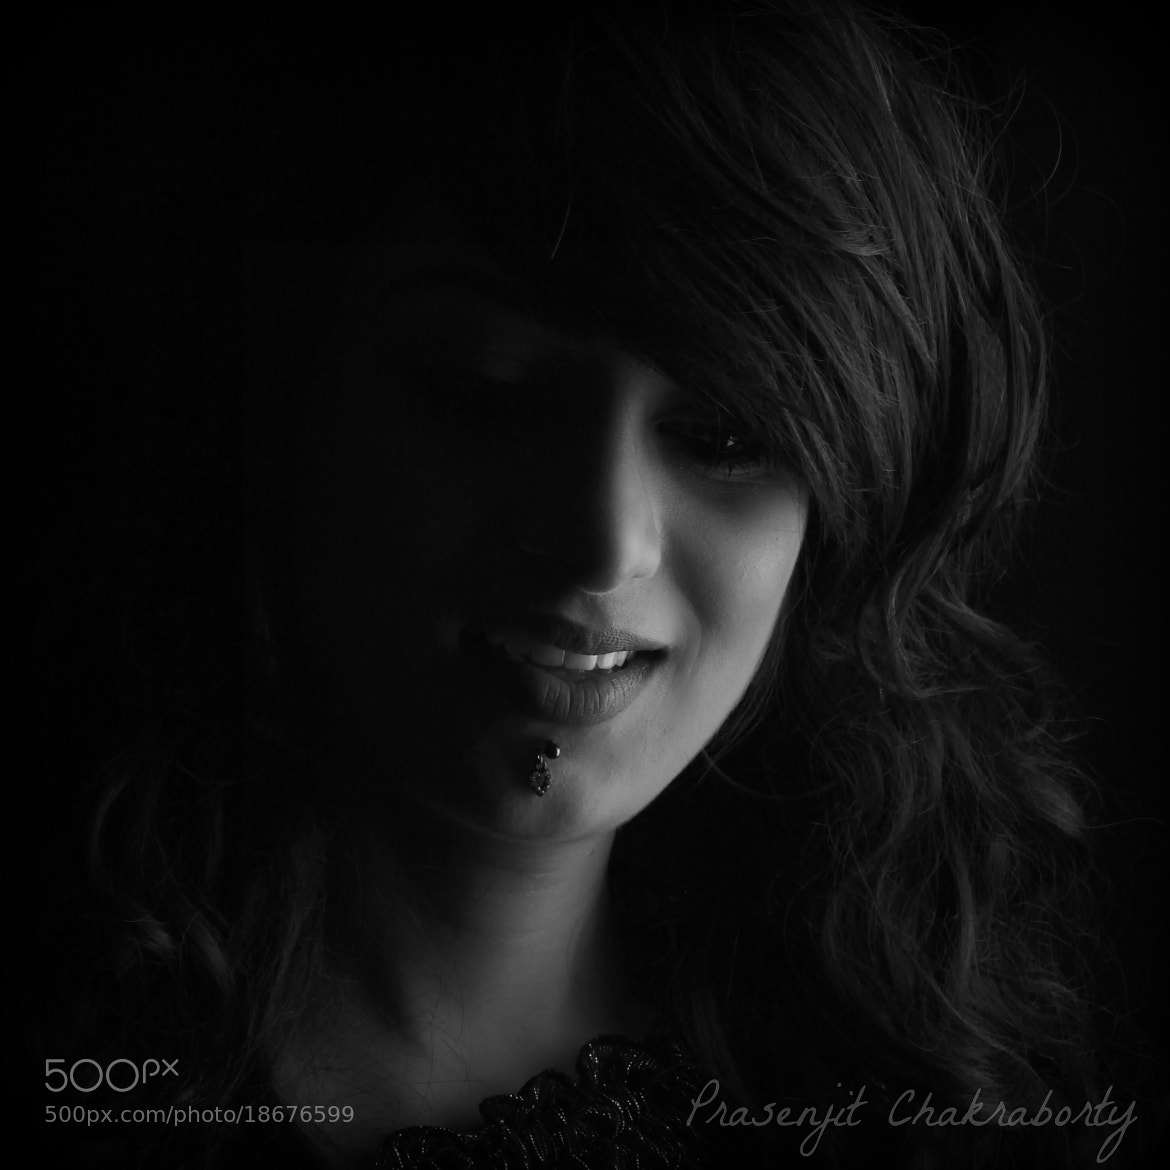 Photograph Sonia~ by Prasenjit Chakraborty on 500px